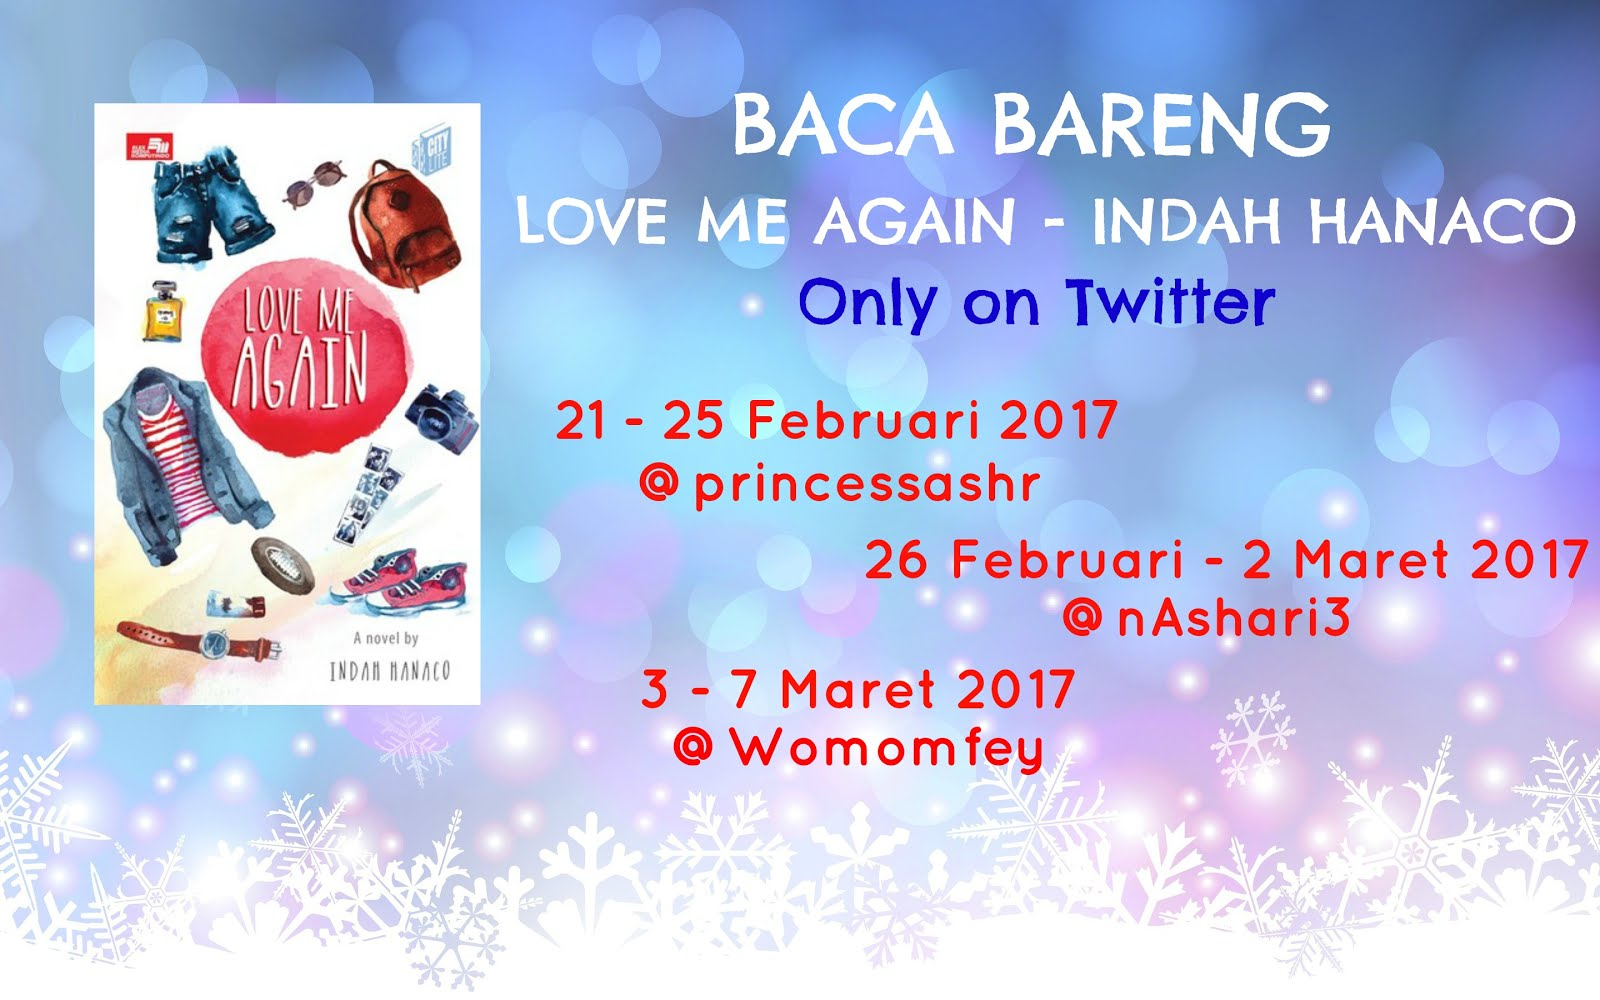 Baca Bareng Love Me Again On Twitter